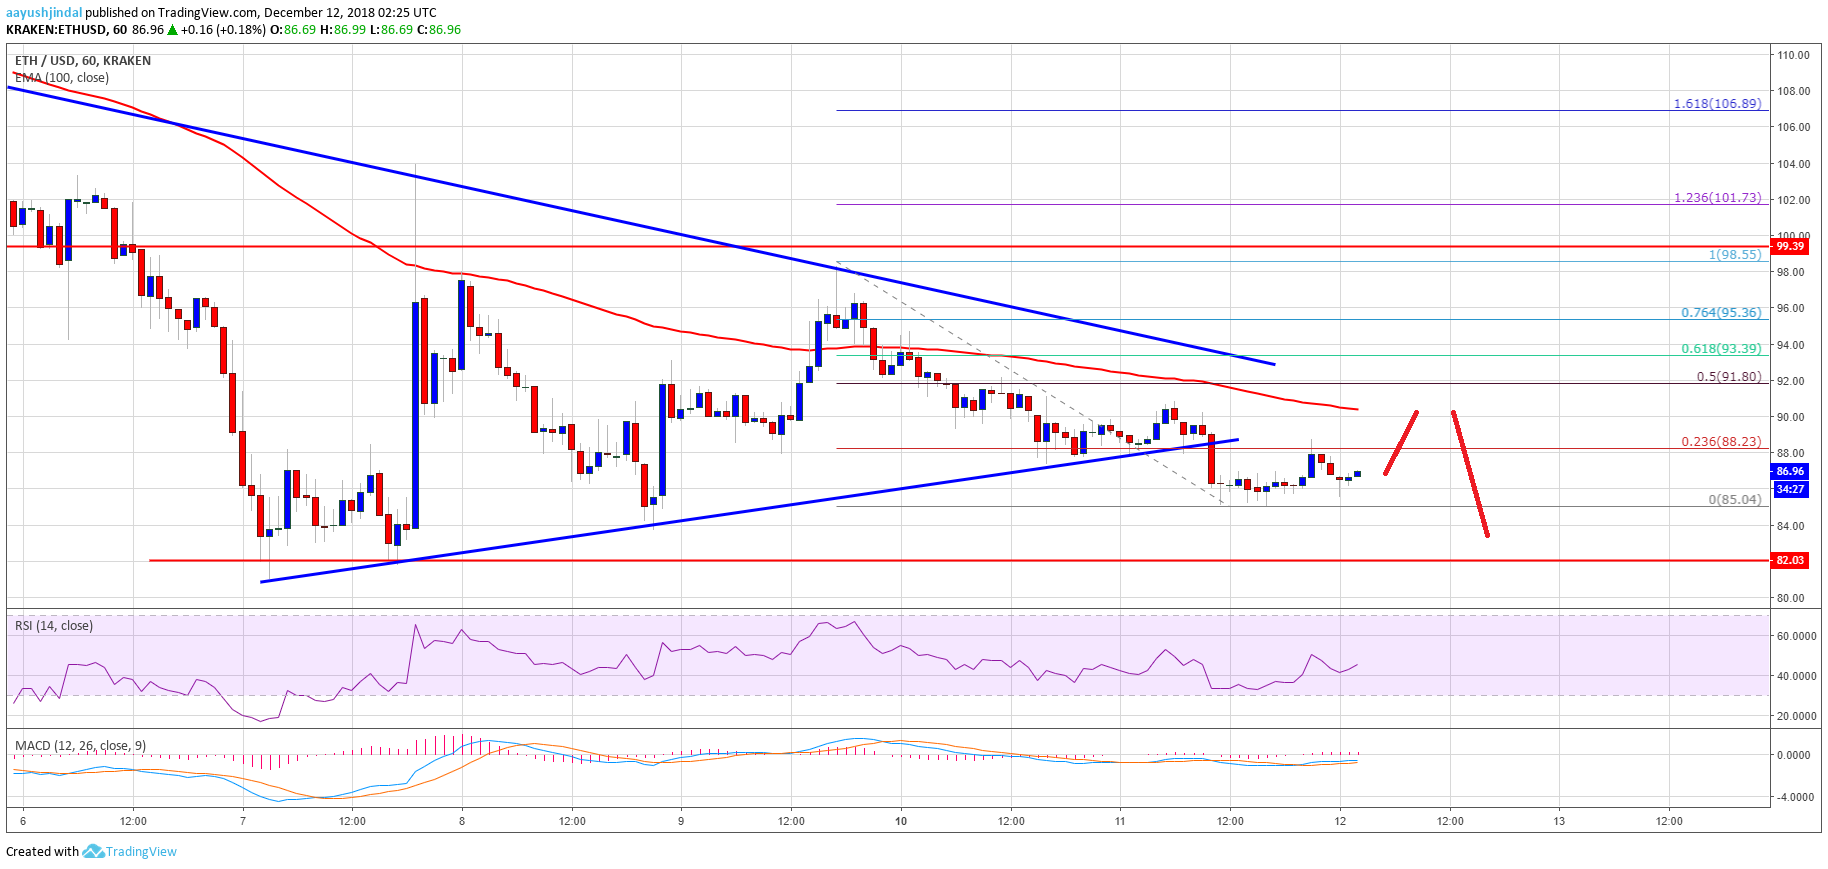 Ethereum Price Analysis: ETH Breaks Key Support, More Losses Likely